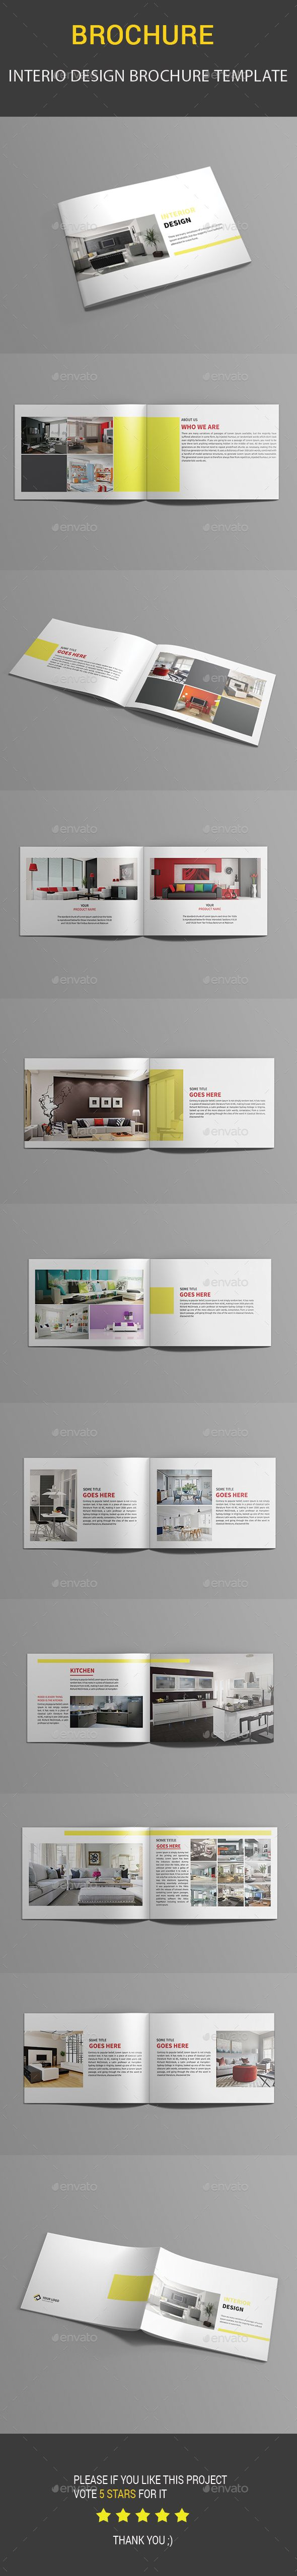 template for brochures